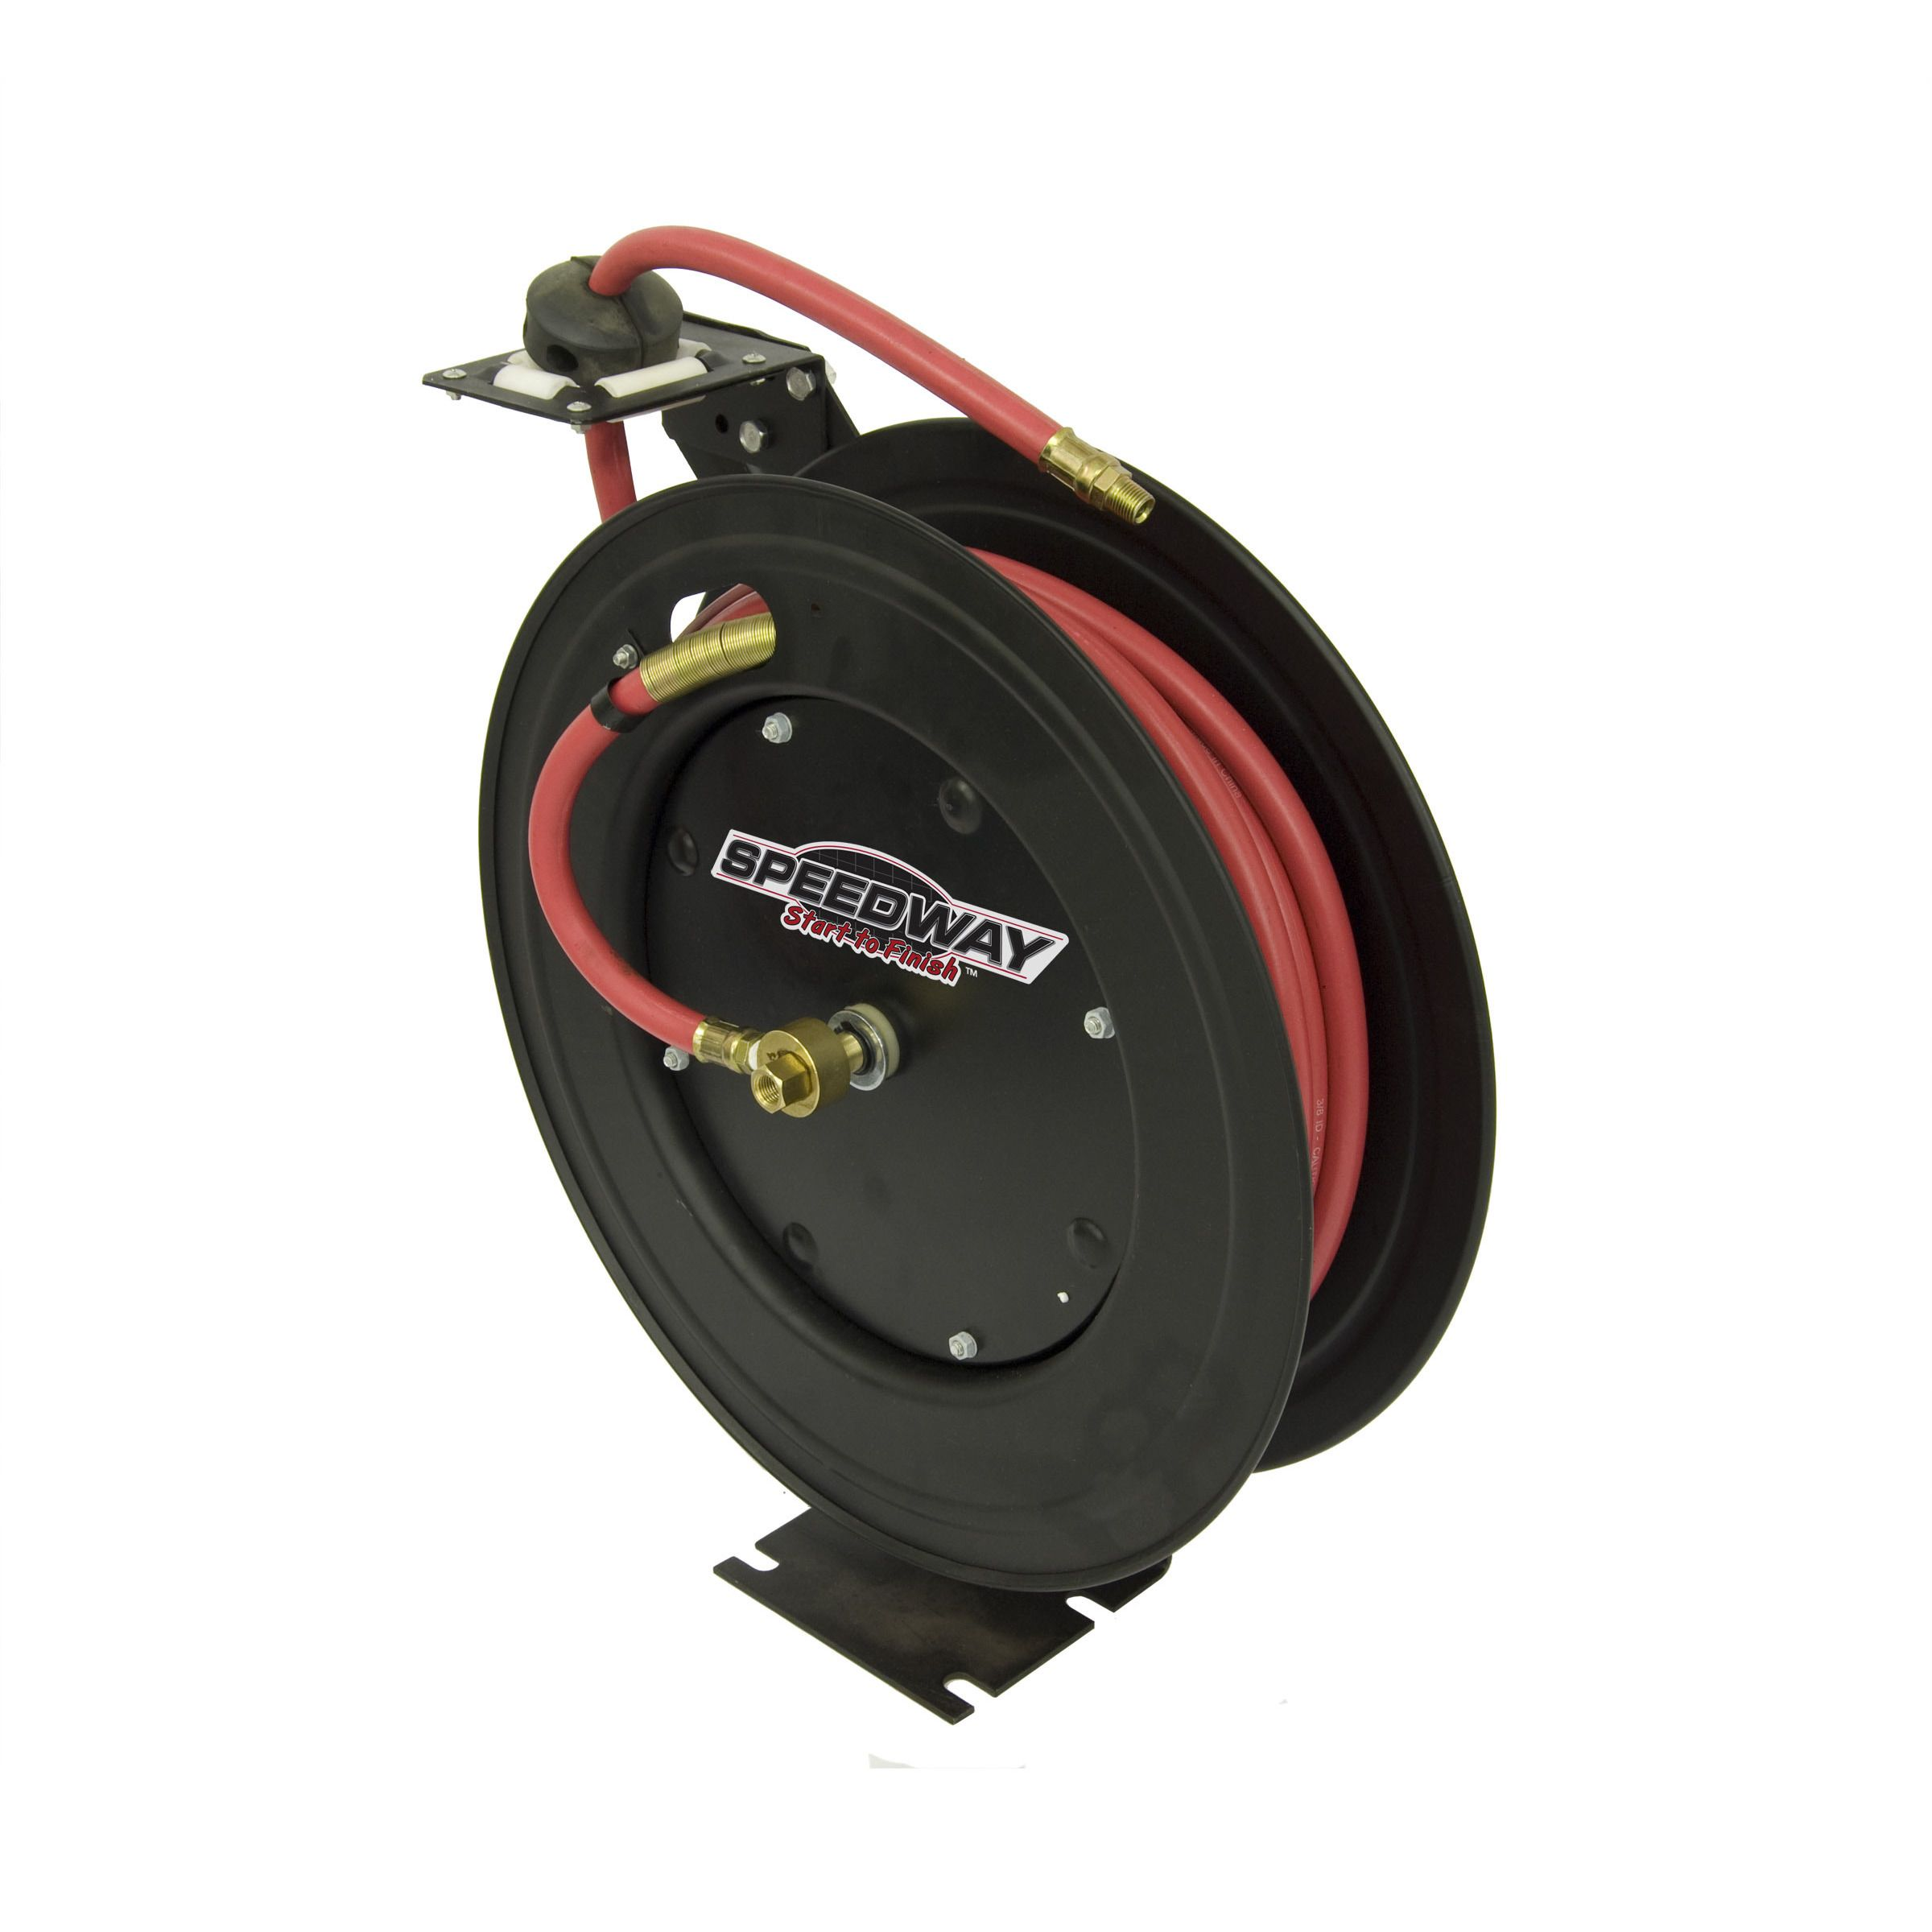 Speedway Retractable Air Hose Reel with 3/8 inch x 50 ft